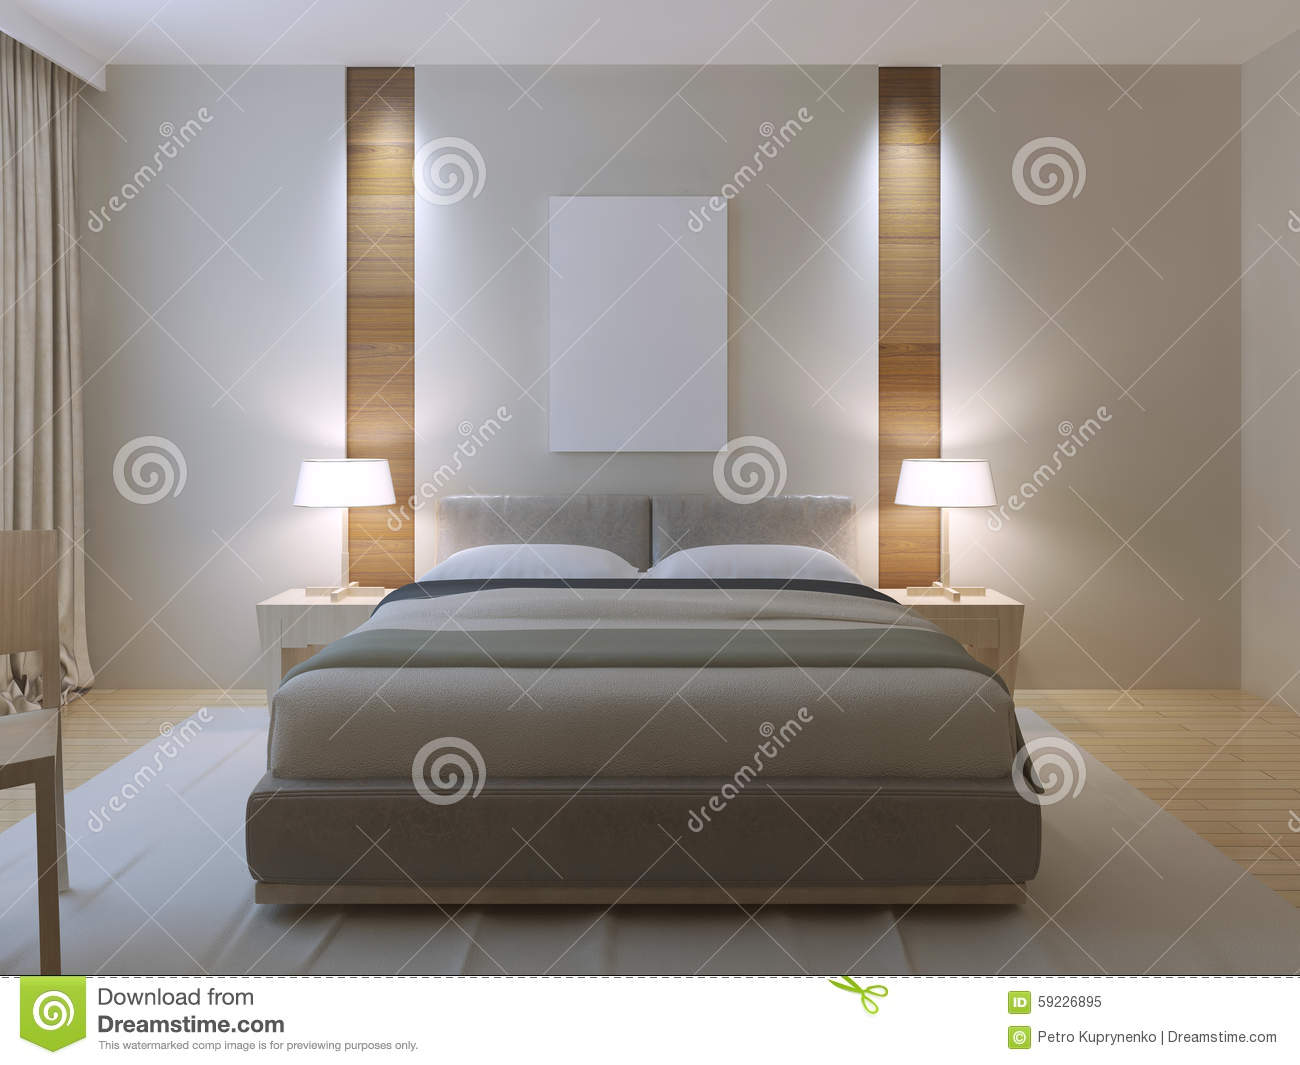 Modern Master Bedroom Design Stock Illustration - Illustration of ...